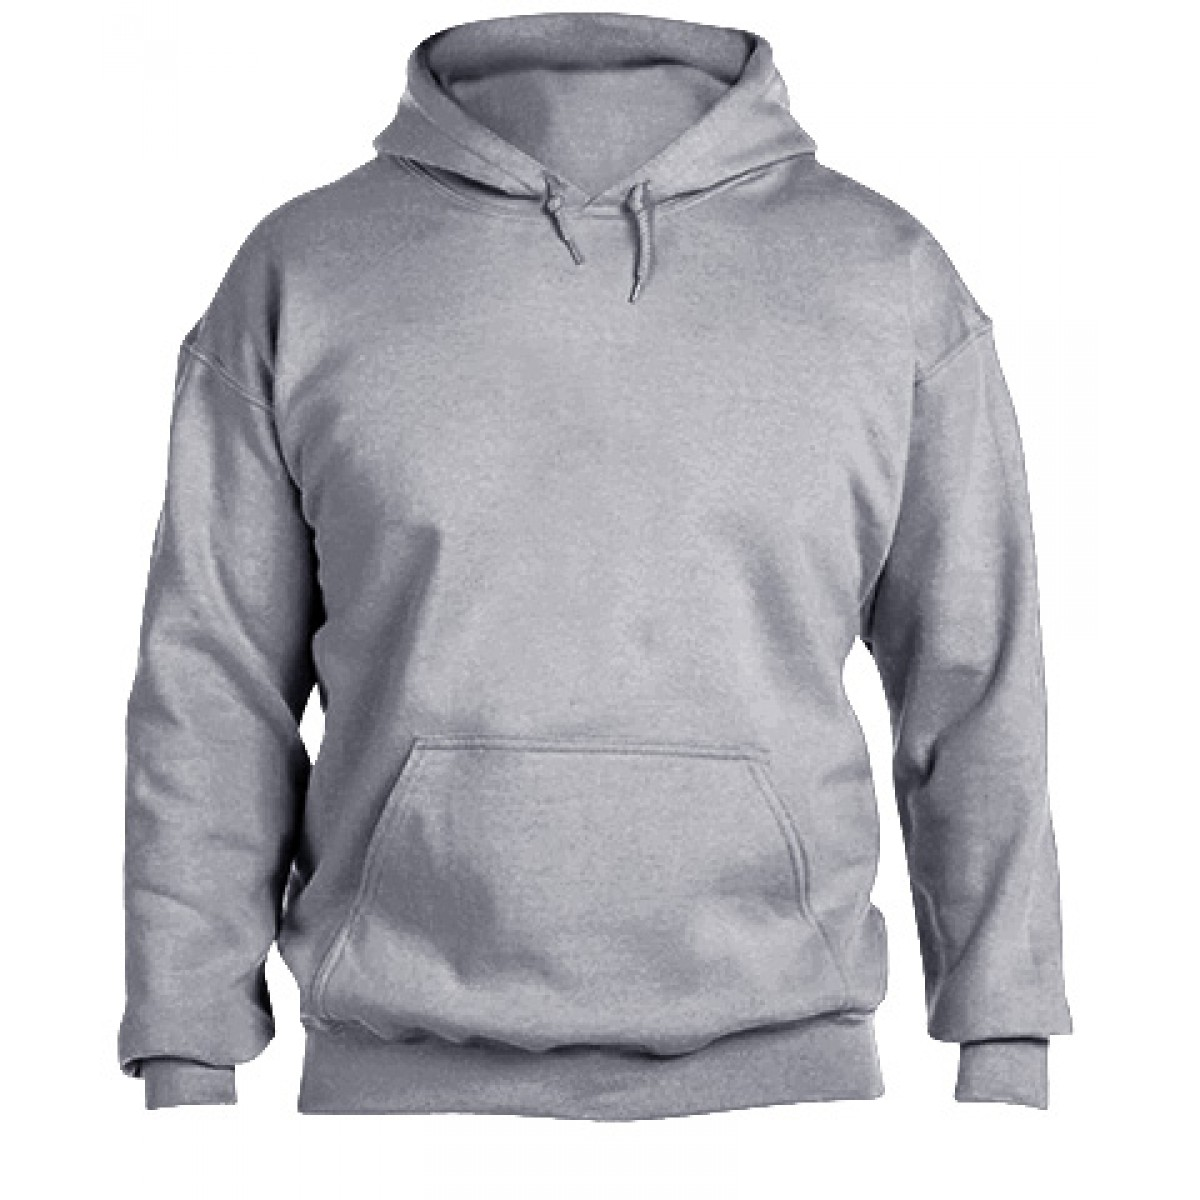 Hooded Sweatshirt 50/50 Heavy Blend-Sports Grey-3XL